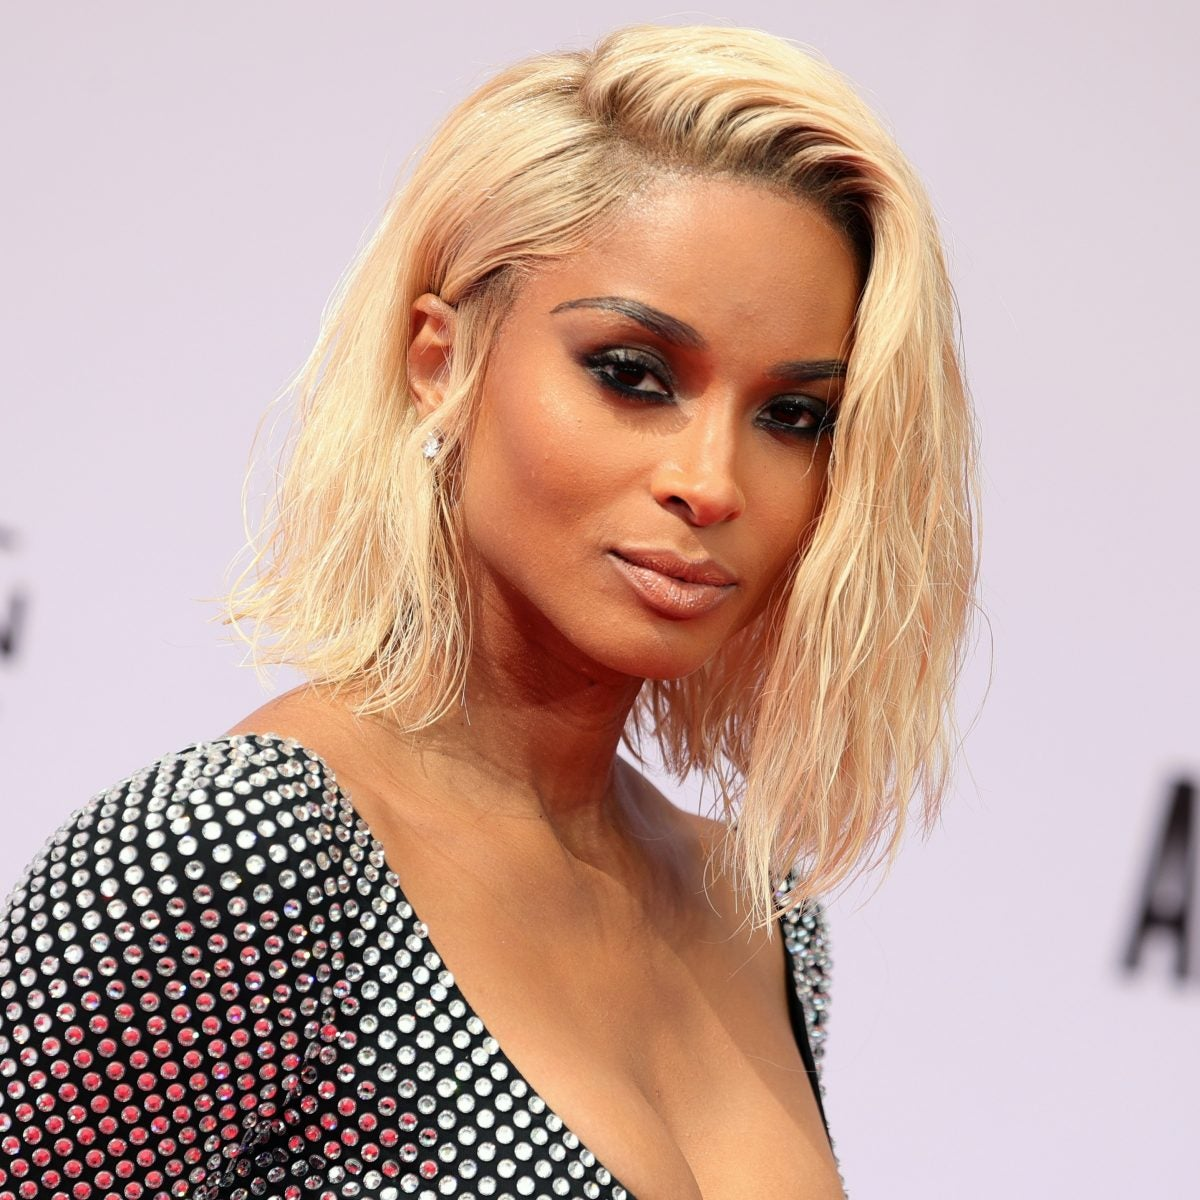 #CervingConfidence With Ciara—Give Your Cervix The Attention It Deserves